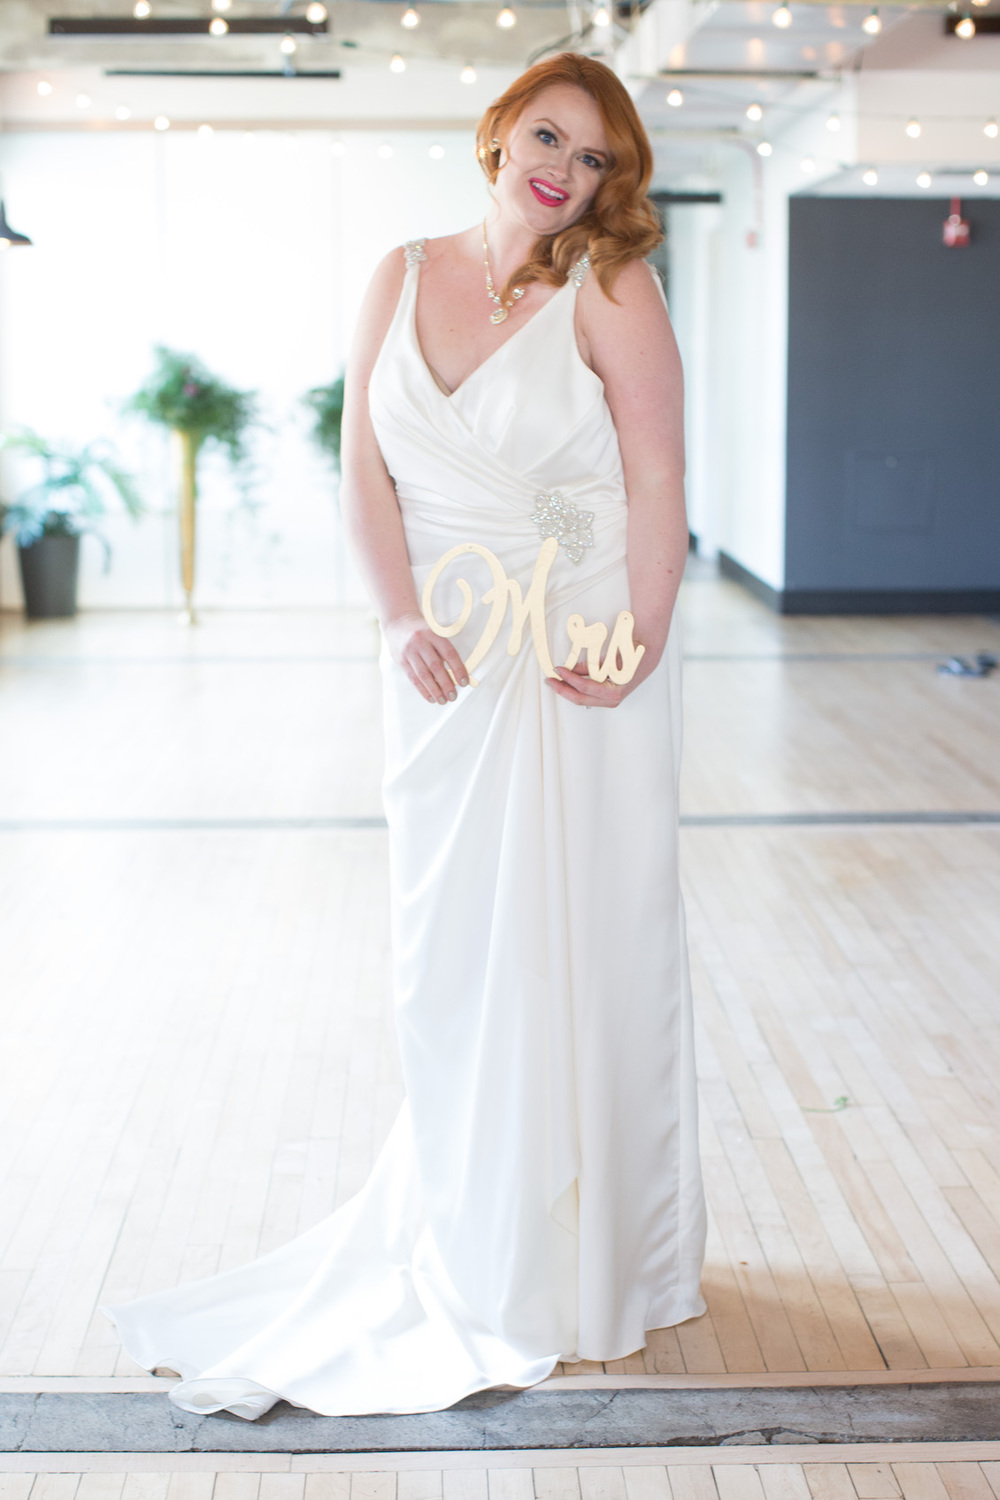 Stunning Bride with her Handmade Mrs Sign / Photography by Amy Nicole